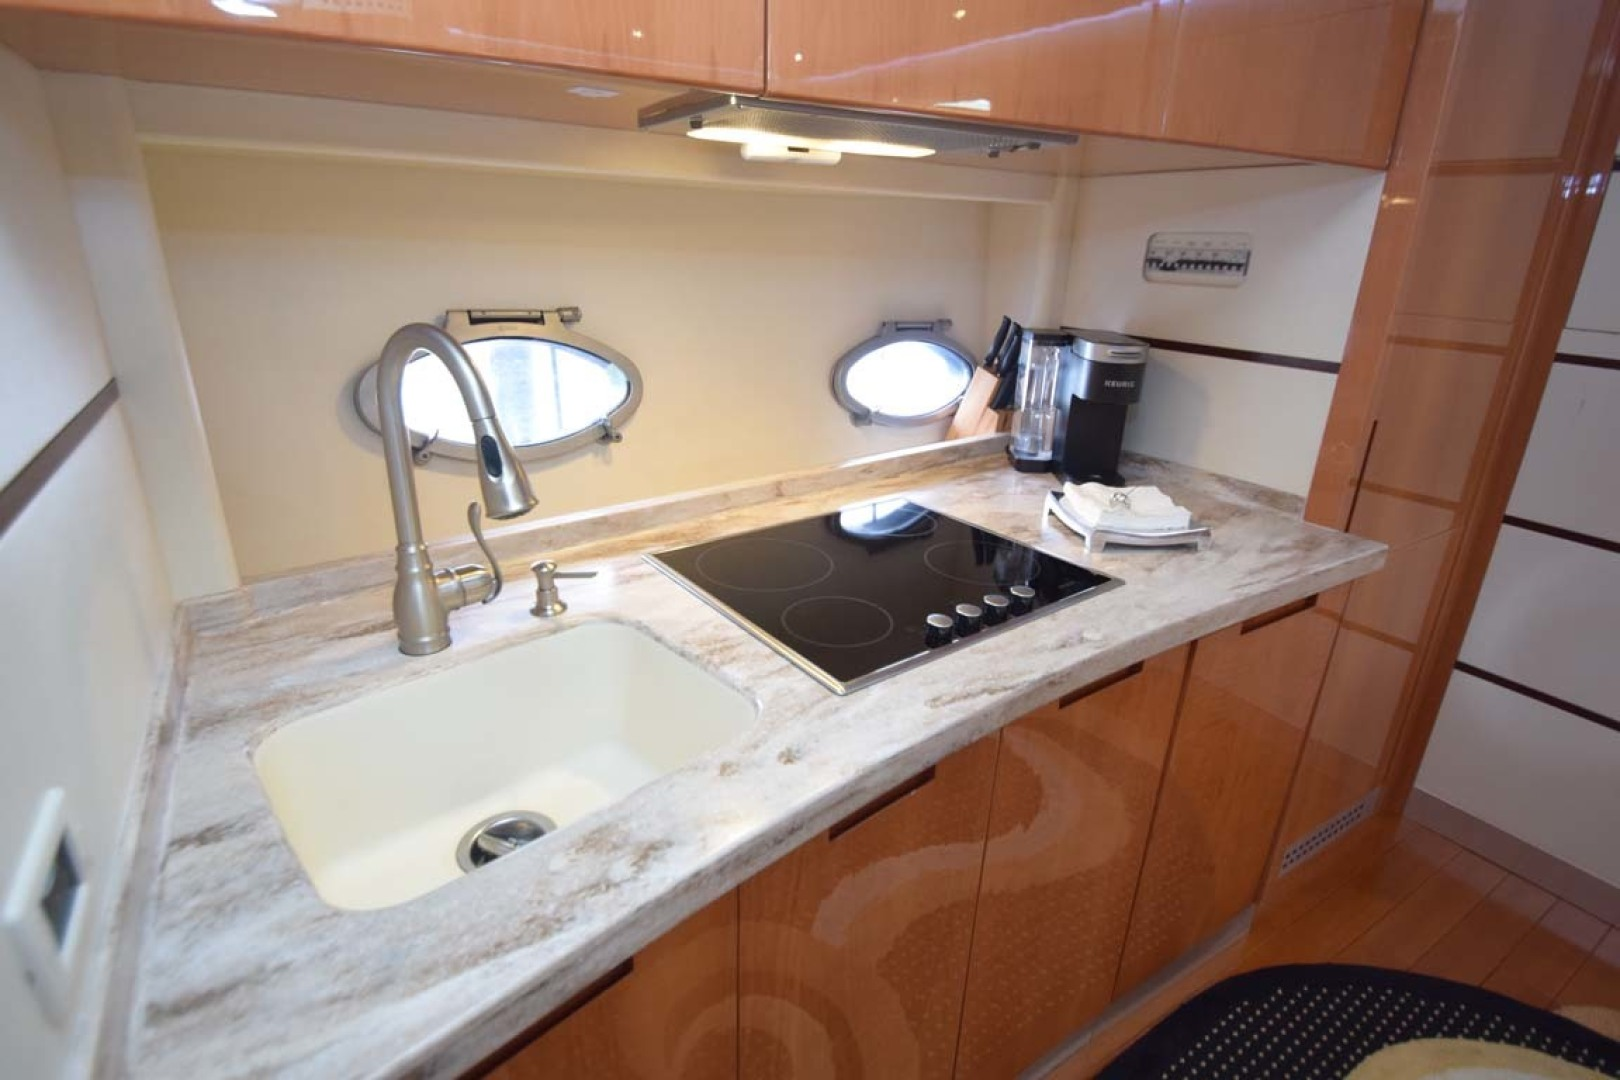 Pershing-62 2007-CHOPIN Lighthouse Point-Florida-United States-Galley Details Cooktop And Sink-1625729 | Thumbnail